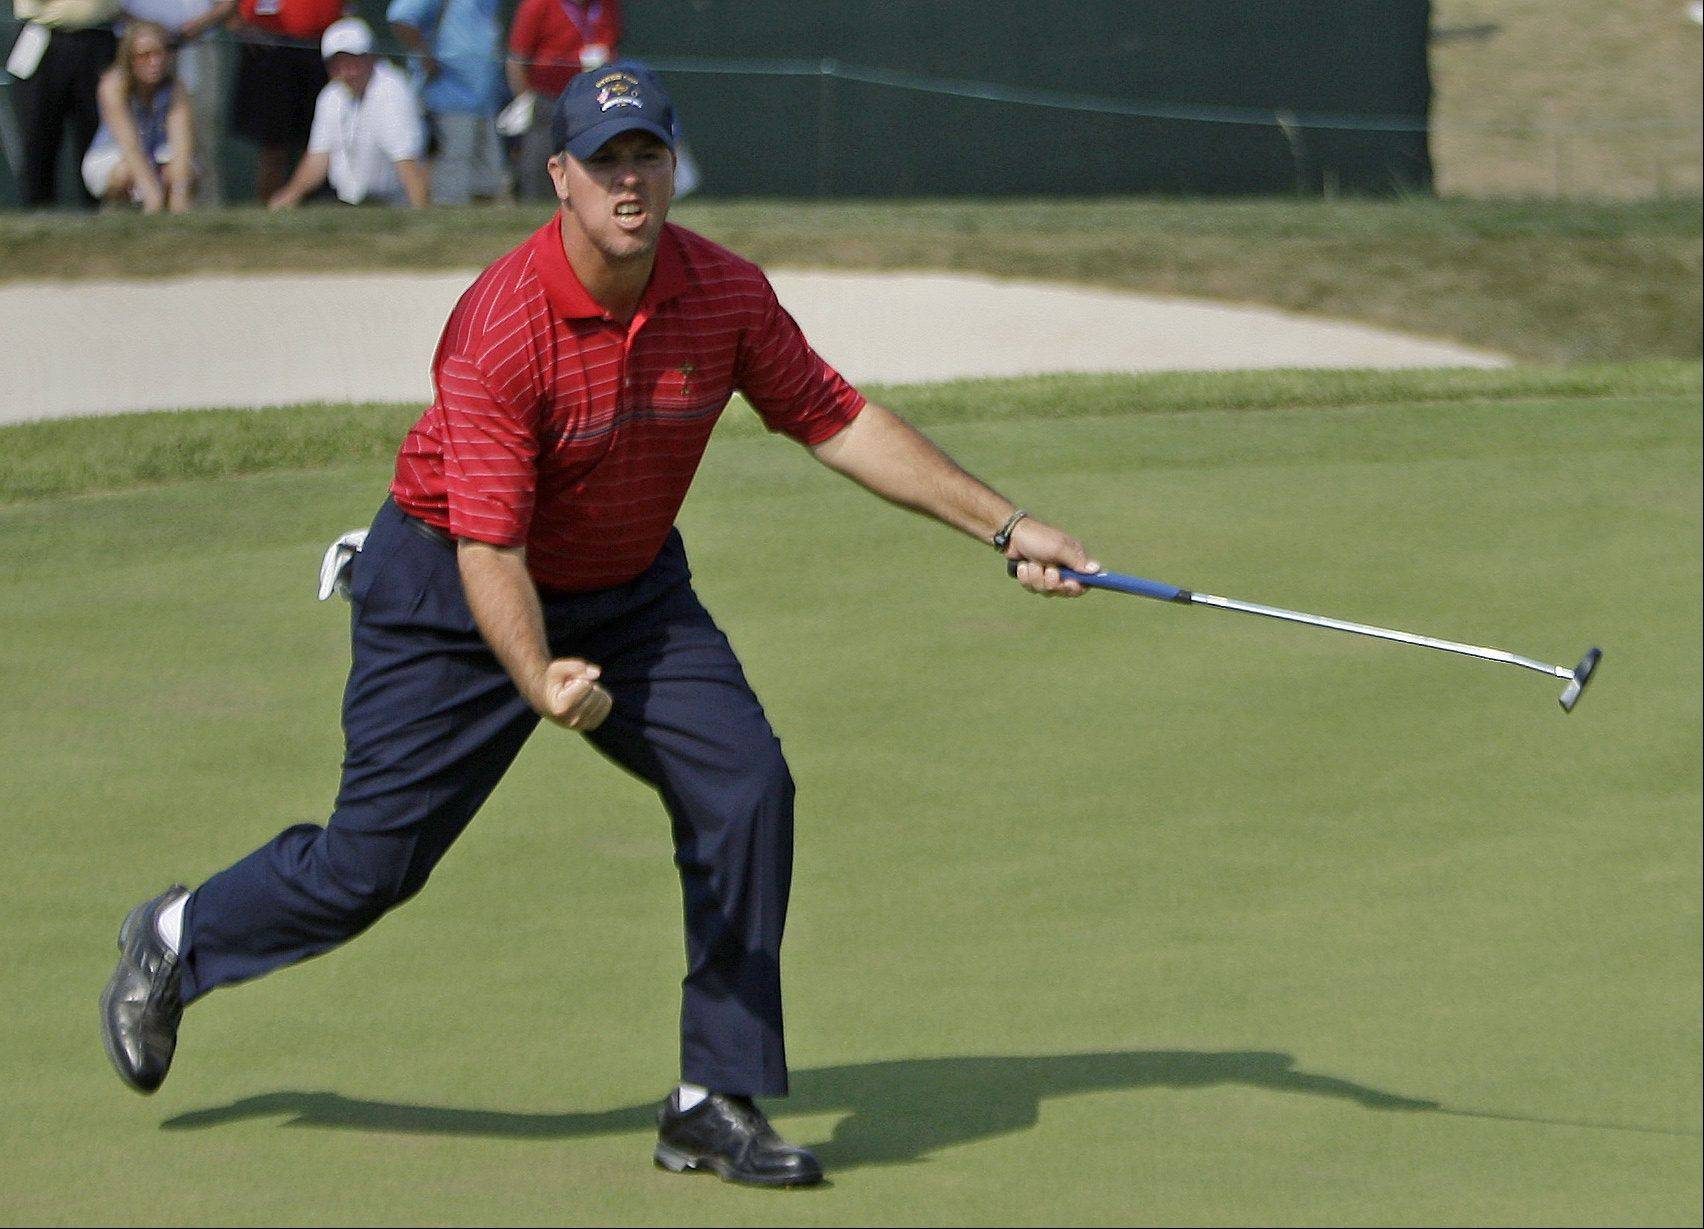 USA's Boo Weekley reacts after sinking a putt on the ninth hole during the final round of the Ryder Cup golf tournament at the Valhalla Golf Club, in Louisville, Ky., Sunday, Sept. 21, 2008. The colorful rookie character Weekley fueled an American victory.